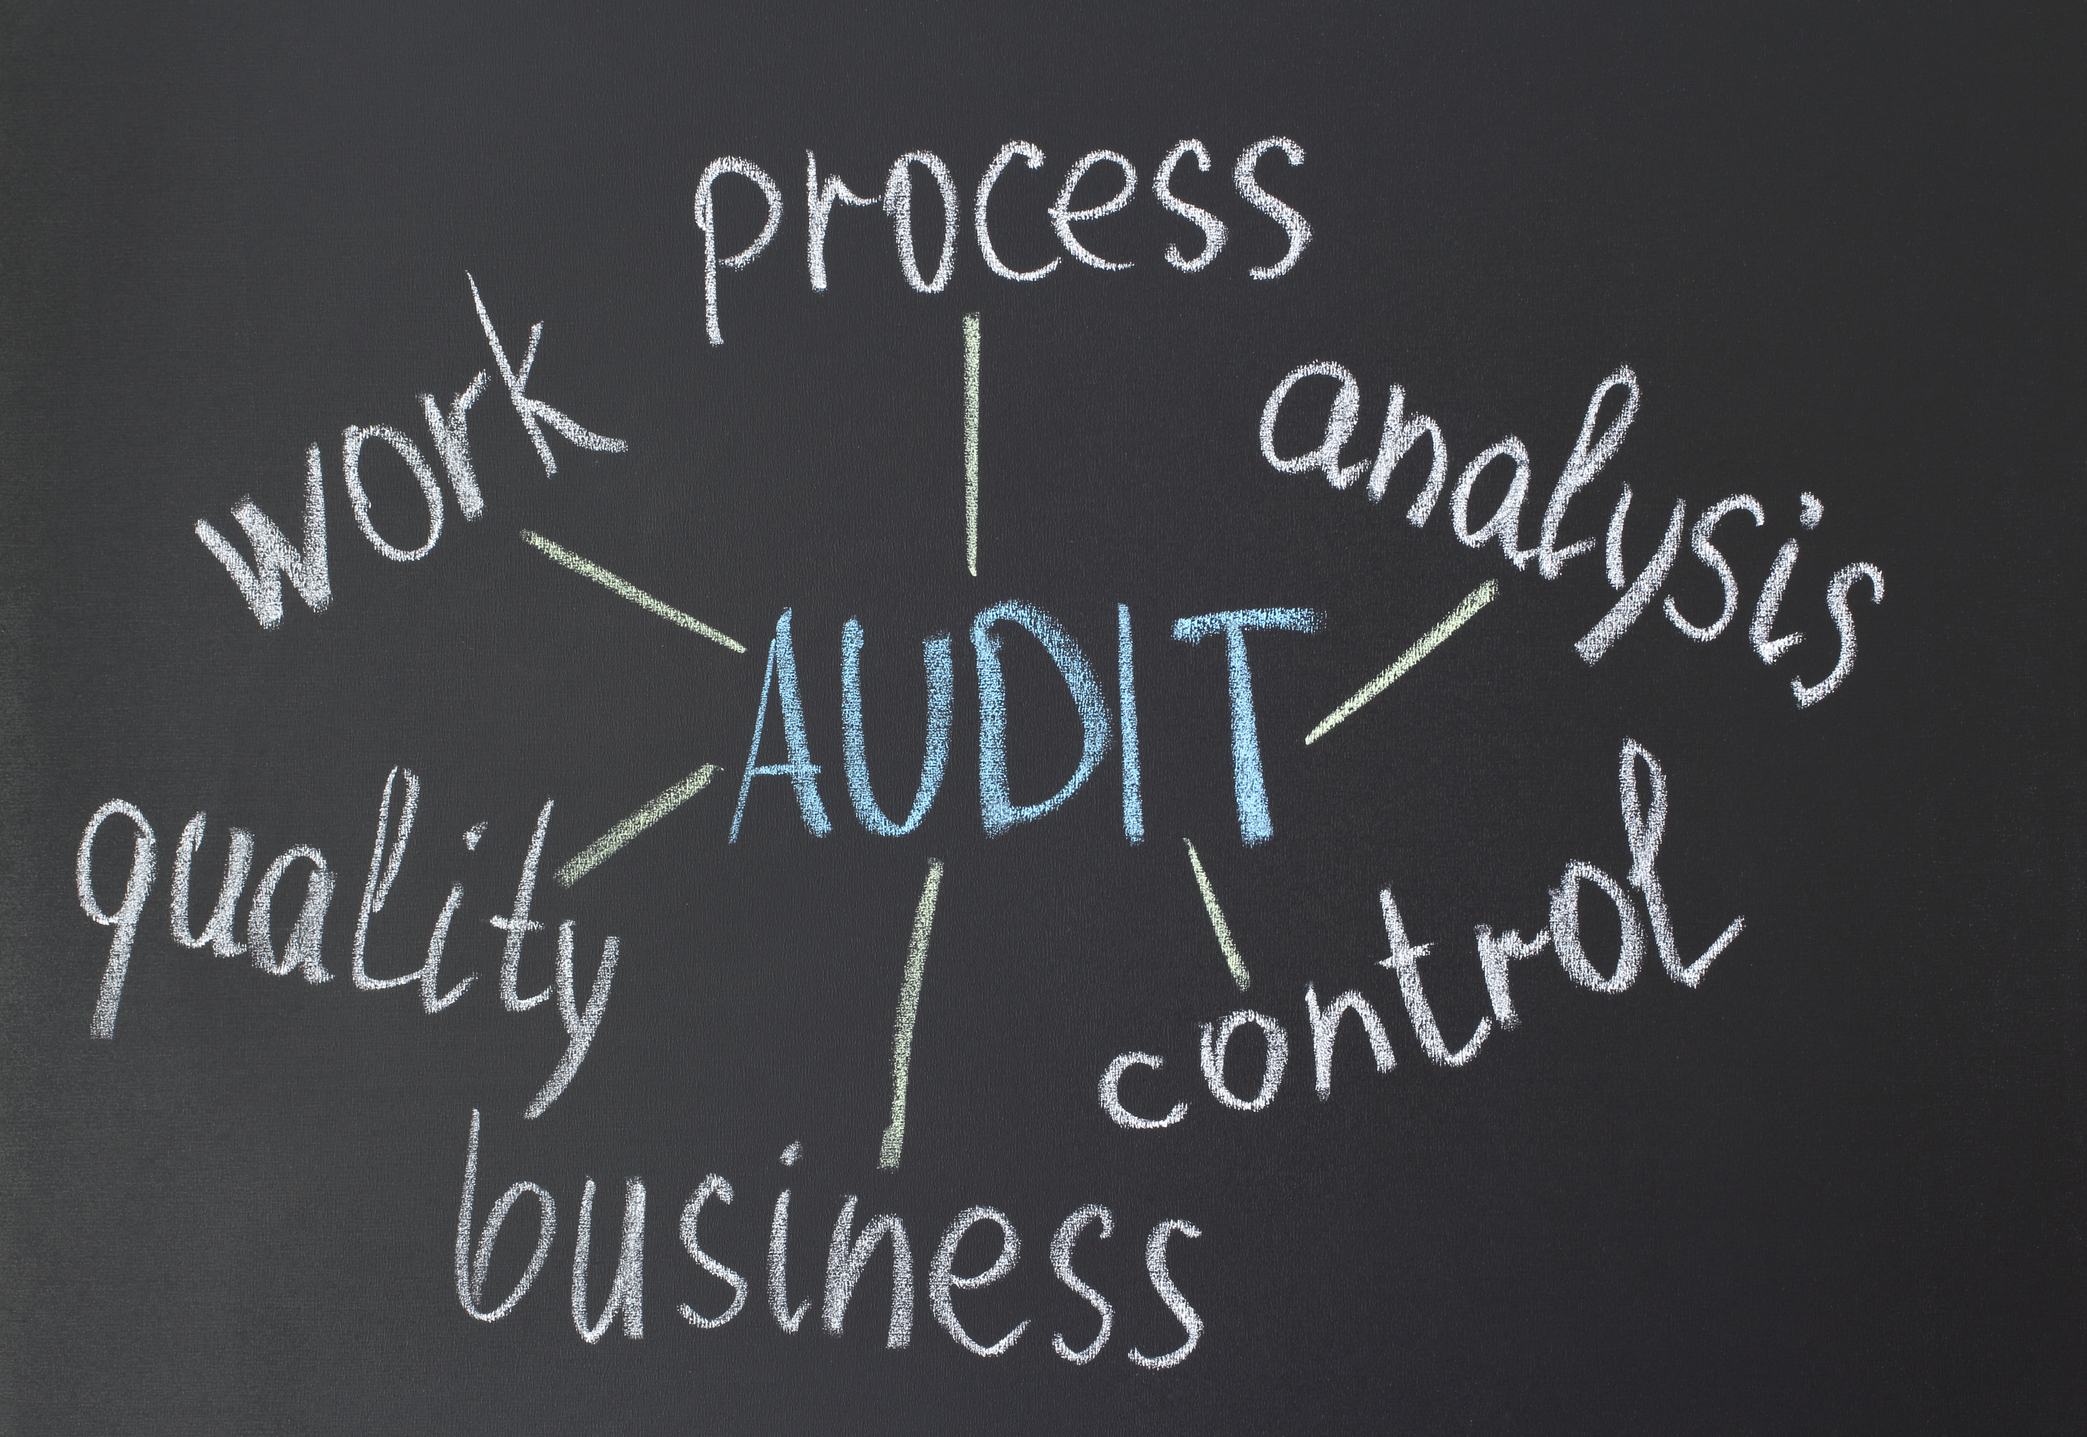 Shelly Strom_Content Auditing